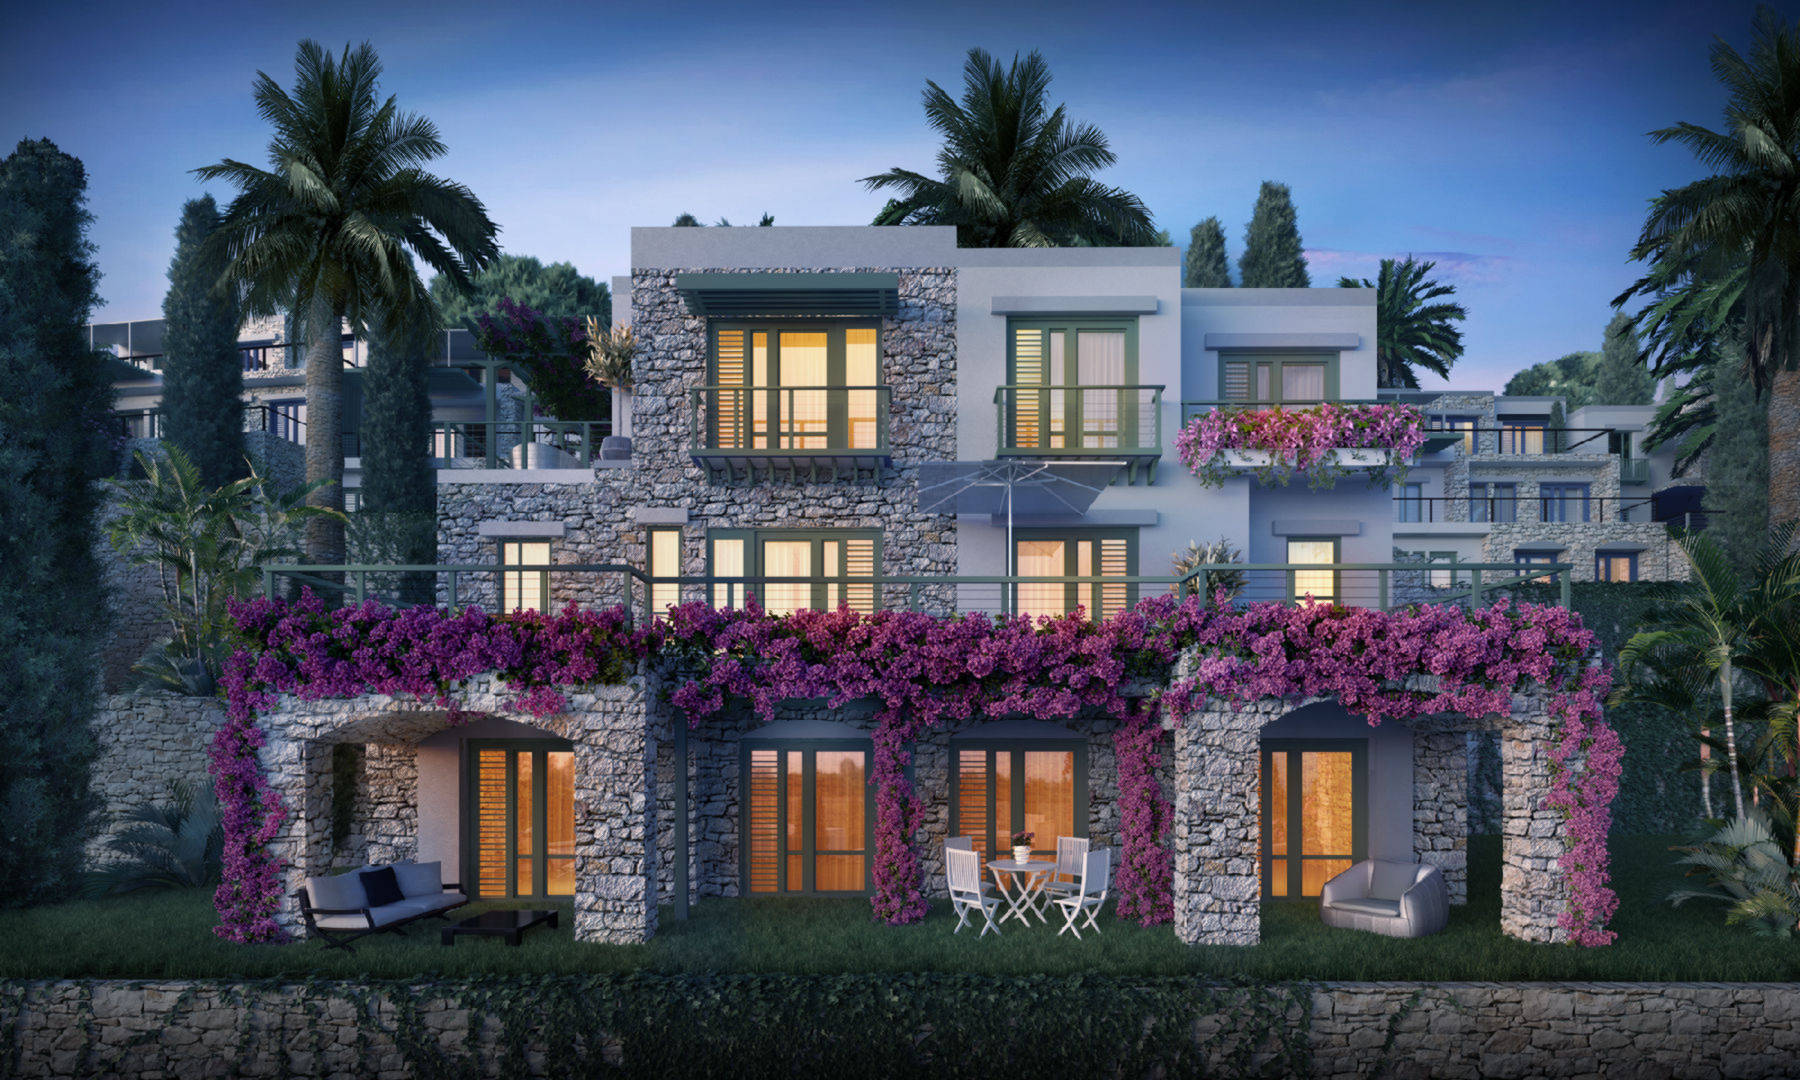 Banyan Tree Residences townhouse, Yalikavak, Bodrum